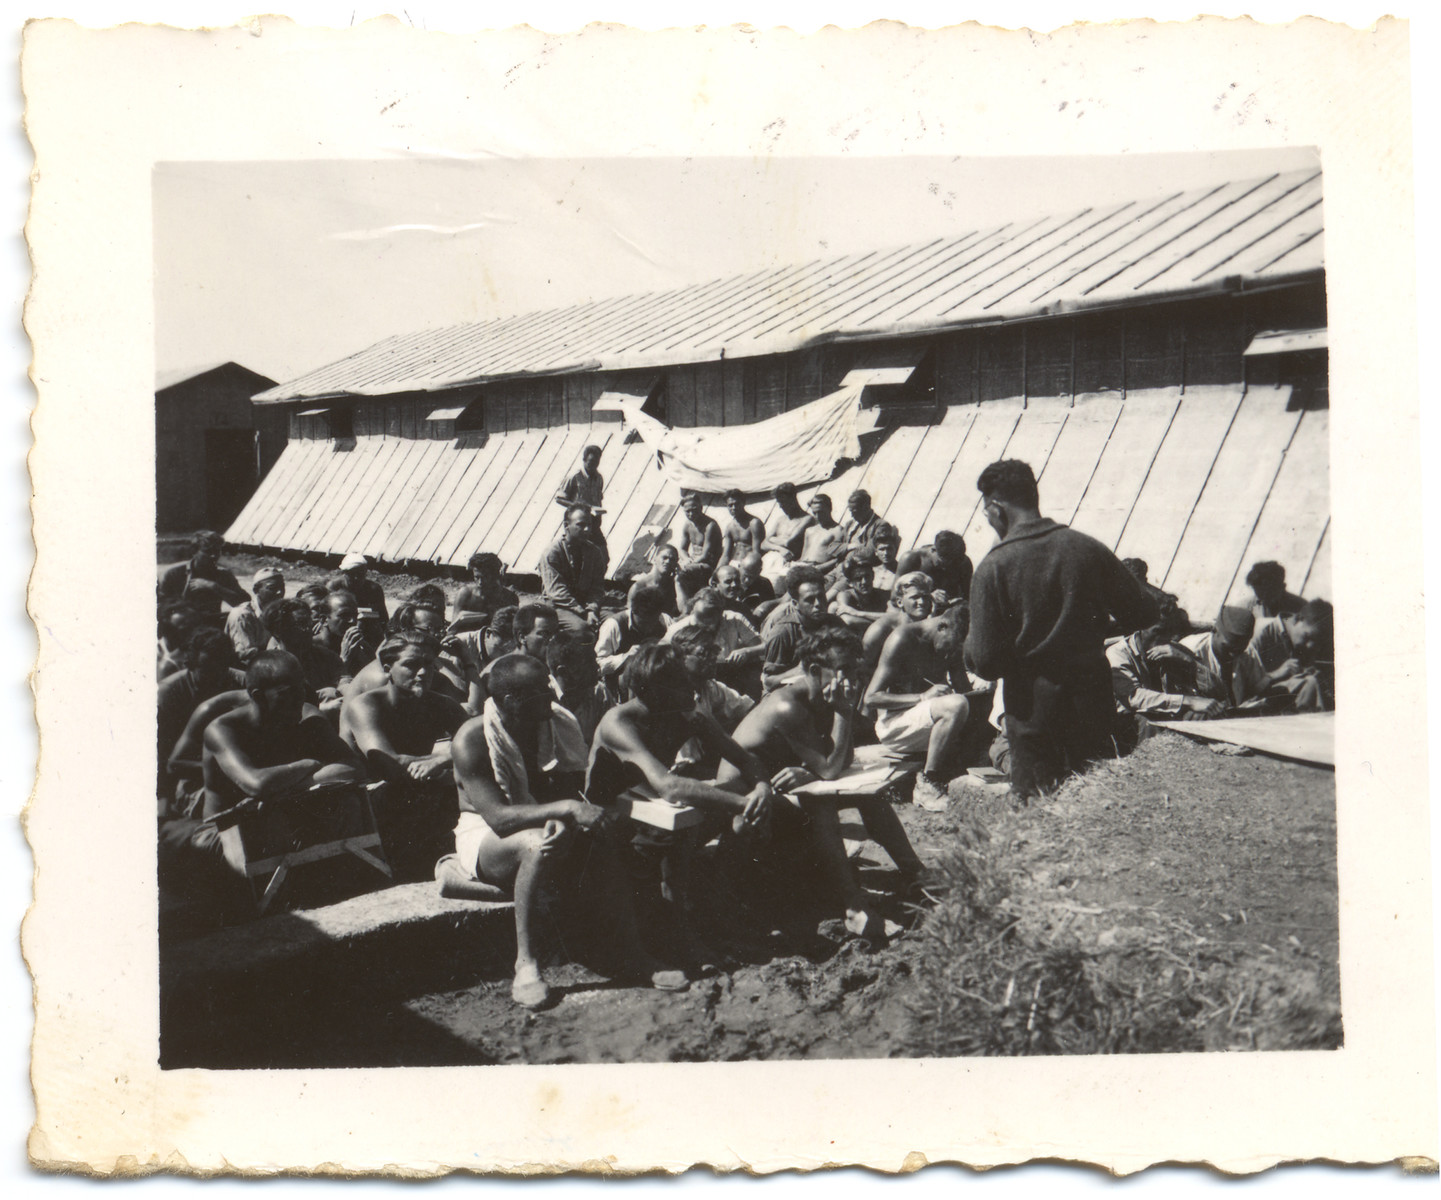 Prisoners [possibly members of the International Brigade who fought in the Spanish Civil war] listen to a speaker in the Gurs internment camp.   The donor's father might be the man sitting on the far right and taking notes.